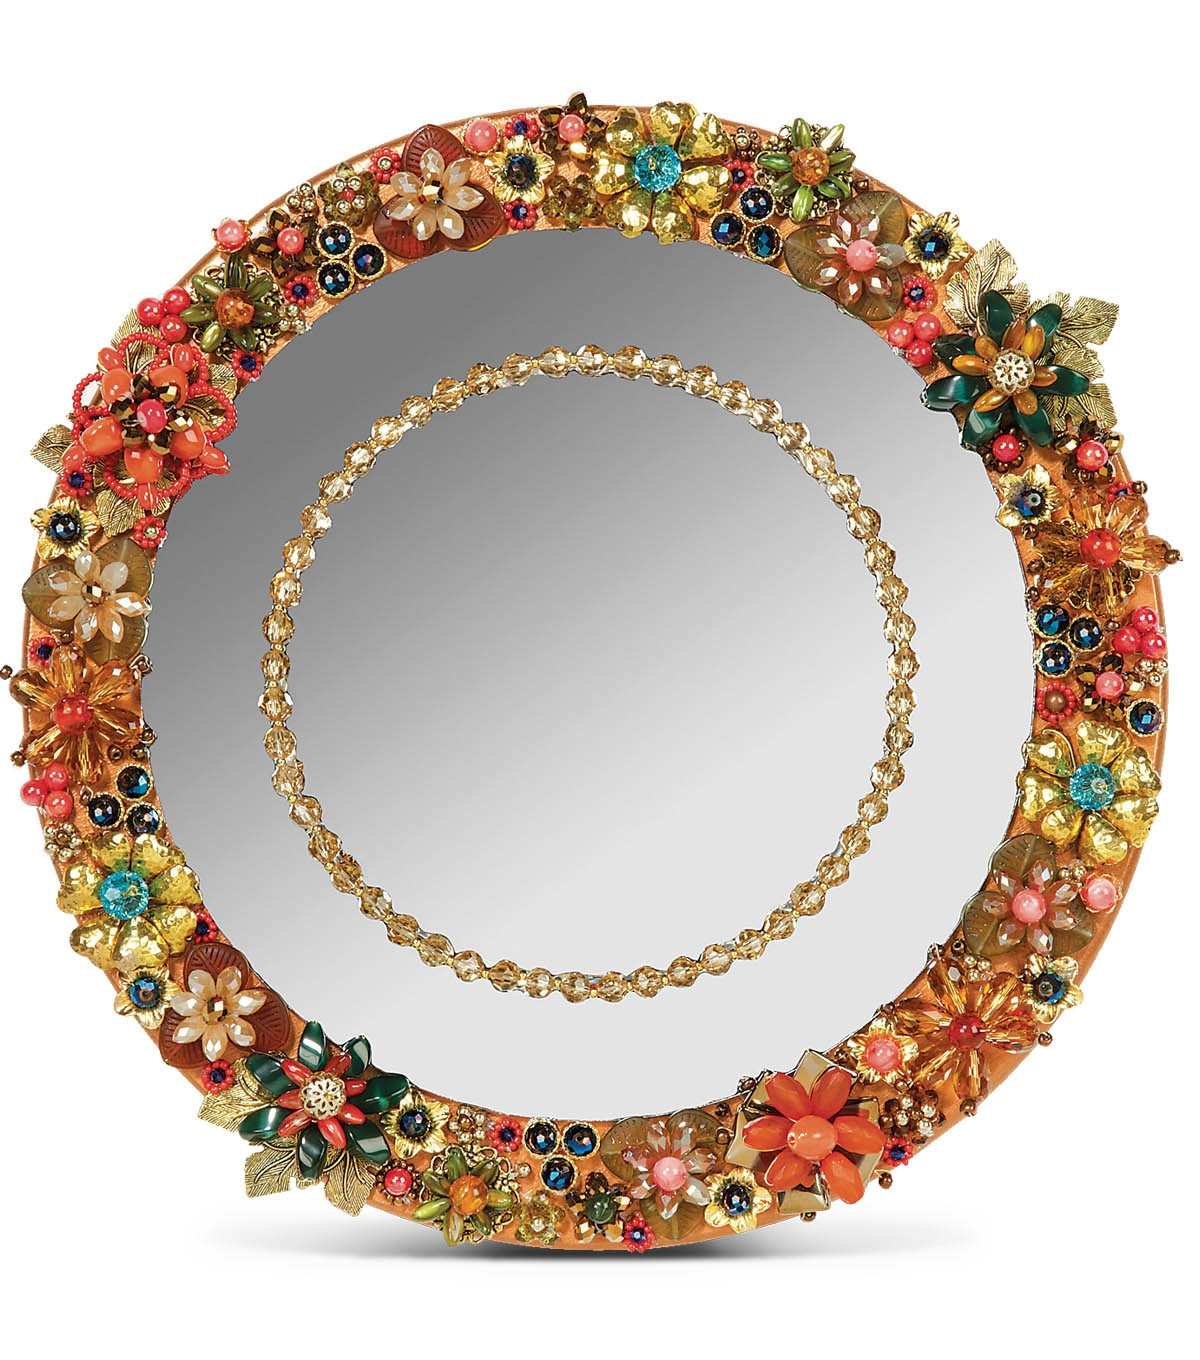 Large Vintage Embellished Deco Jewelry Wall Mirror Rhinestone Pertaining To Embellished Mirrors (Image 9 of 15)